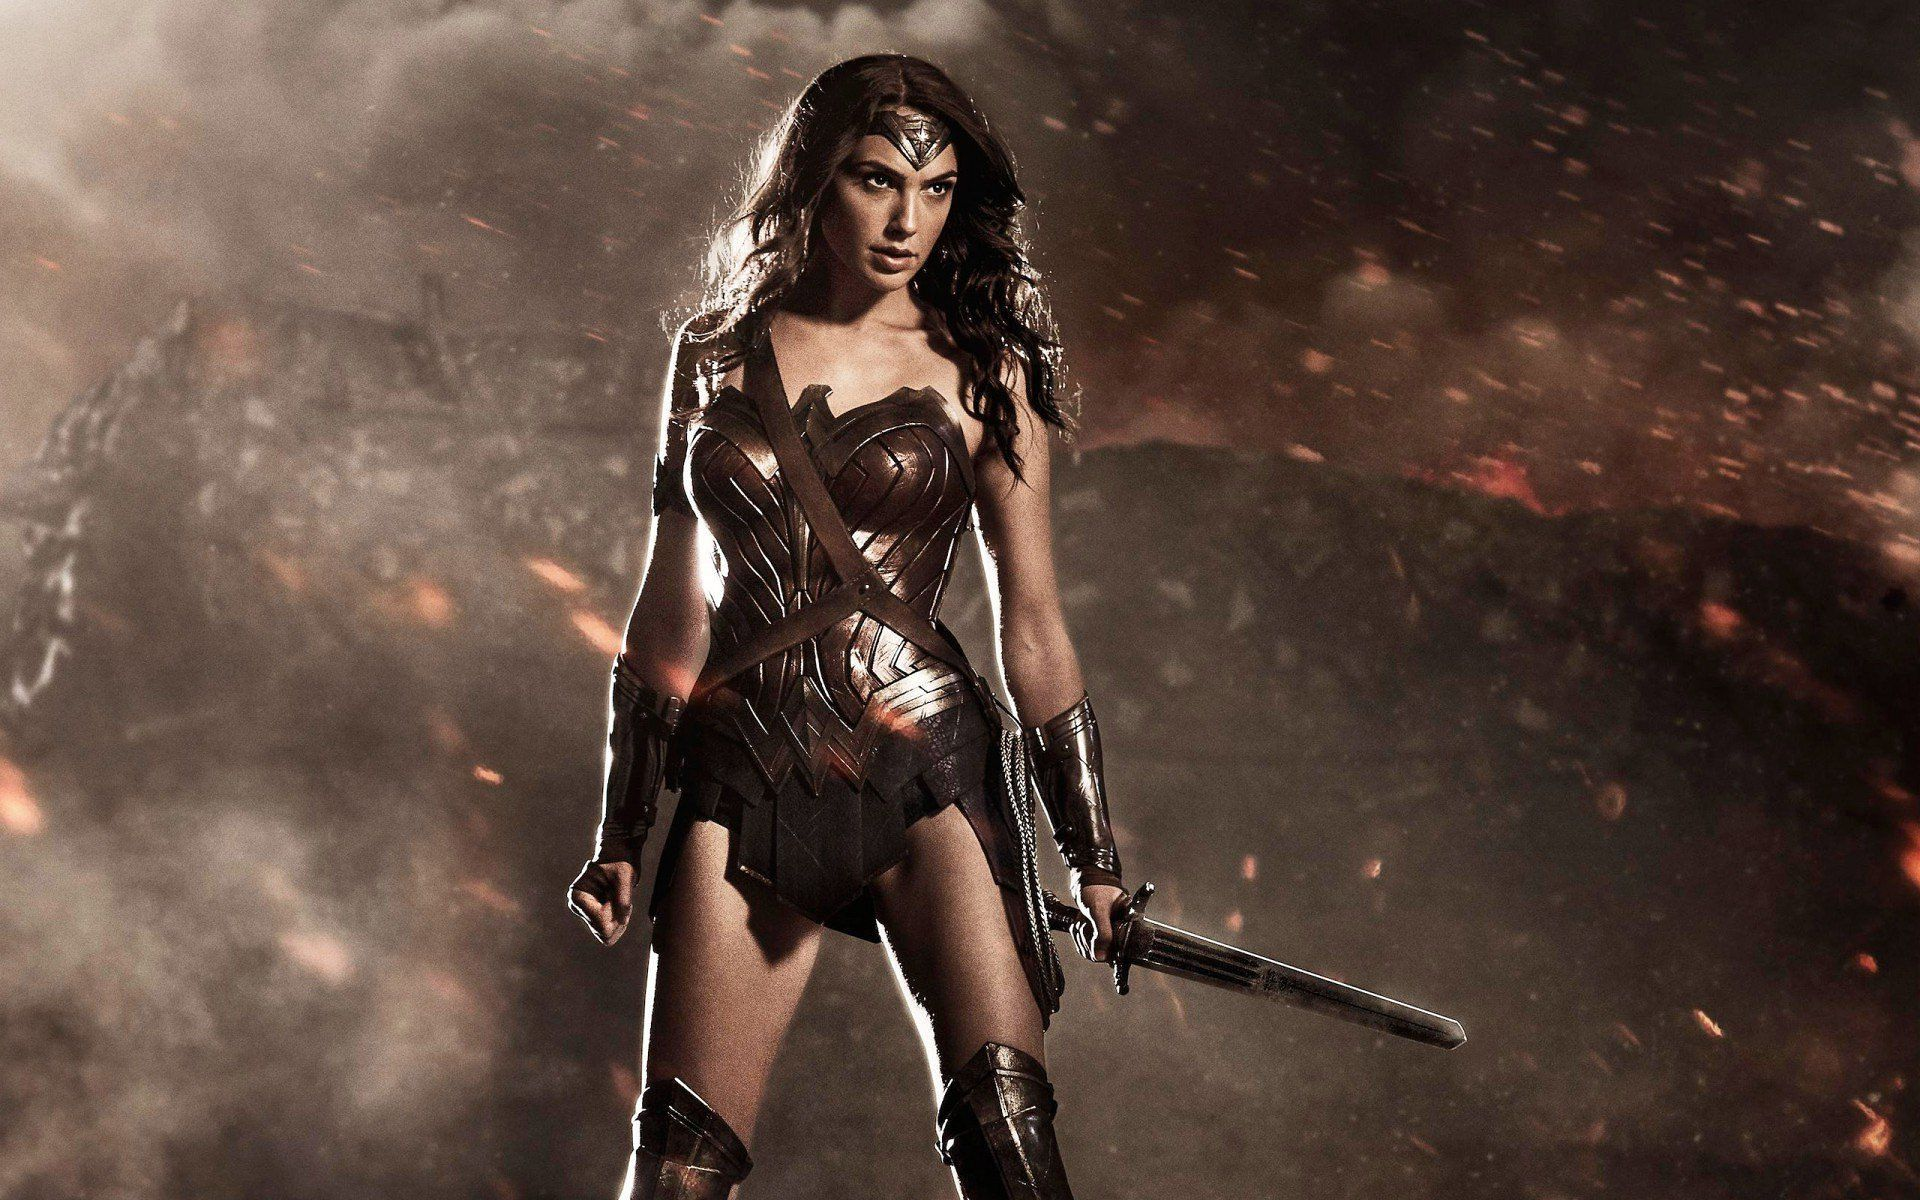 Gal Gadot as Wonder Woman in the 2017 motion picture